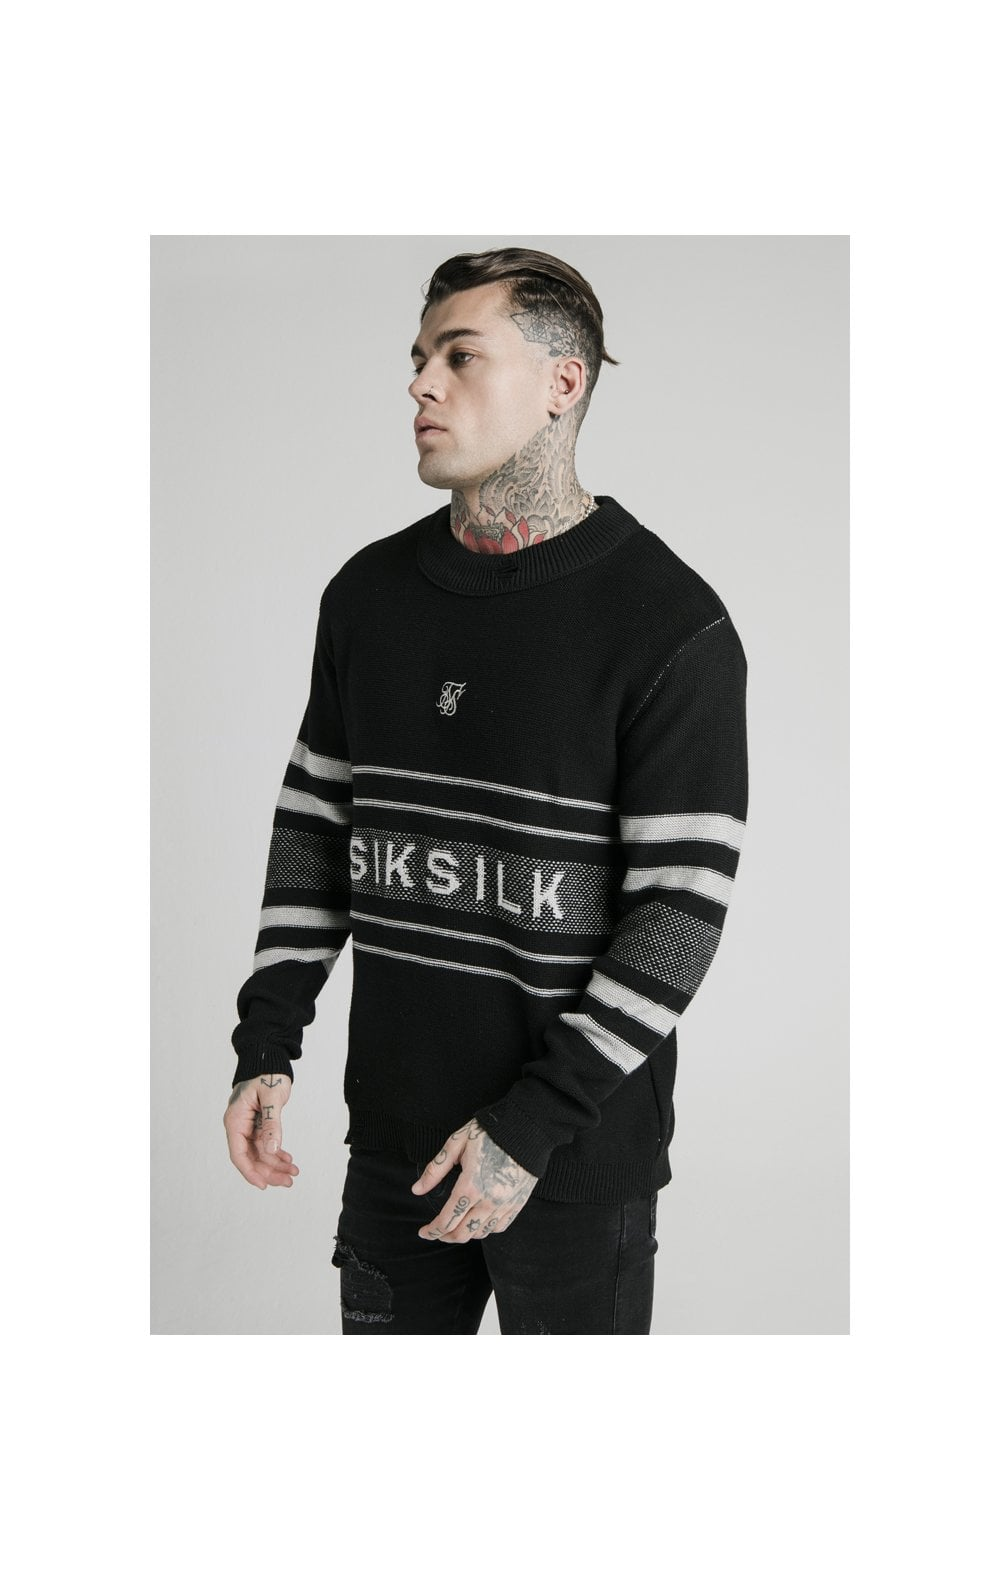 SikSilk L/S Knitted Funnel Sweater - Black MEN SIZES TOP: XXL